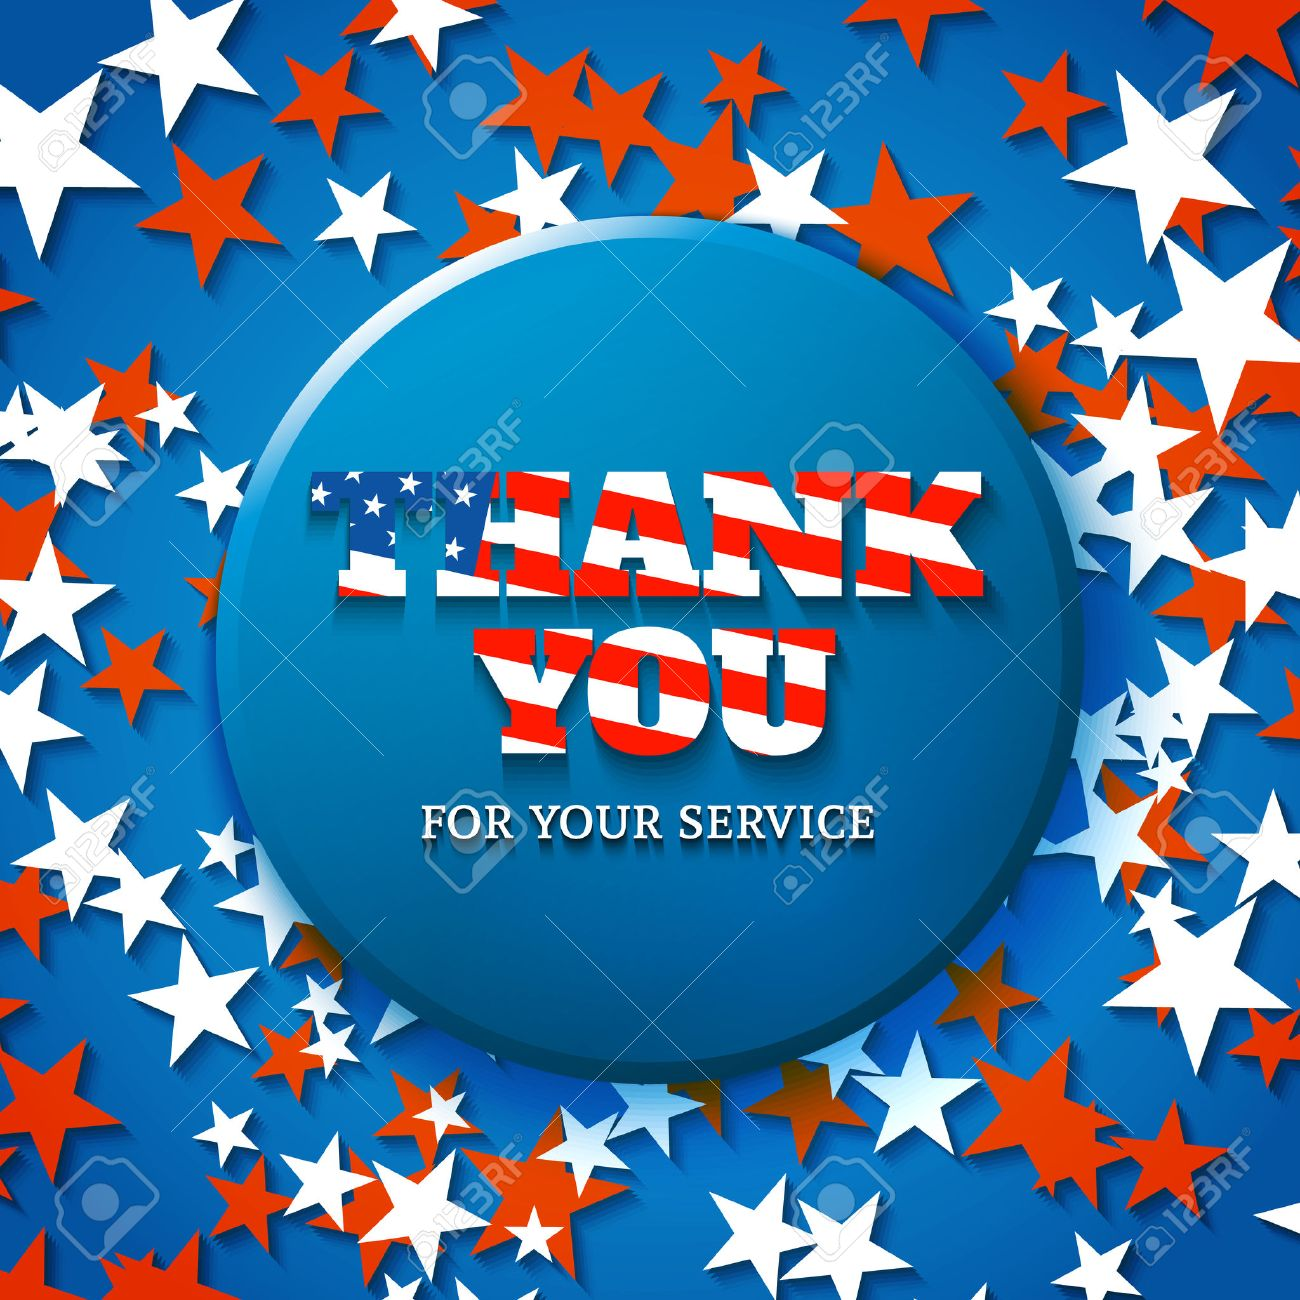 Thank You For Your Service Military Appreciation Card With Star